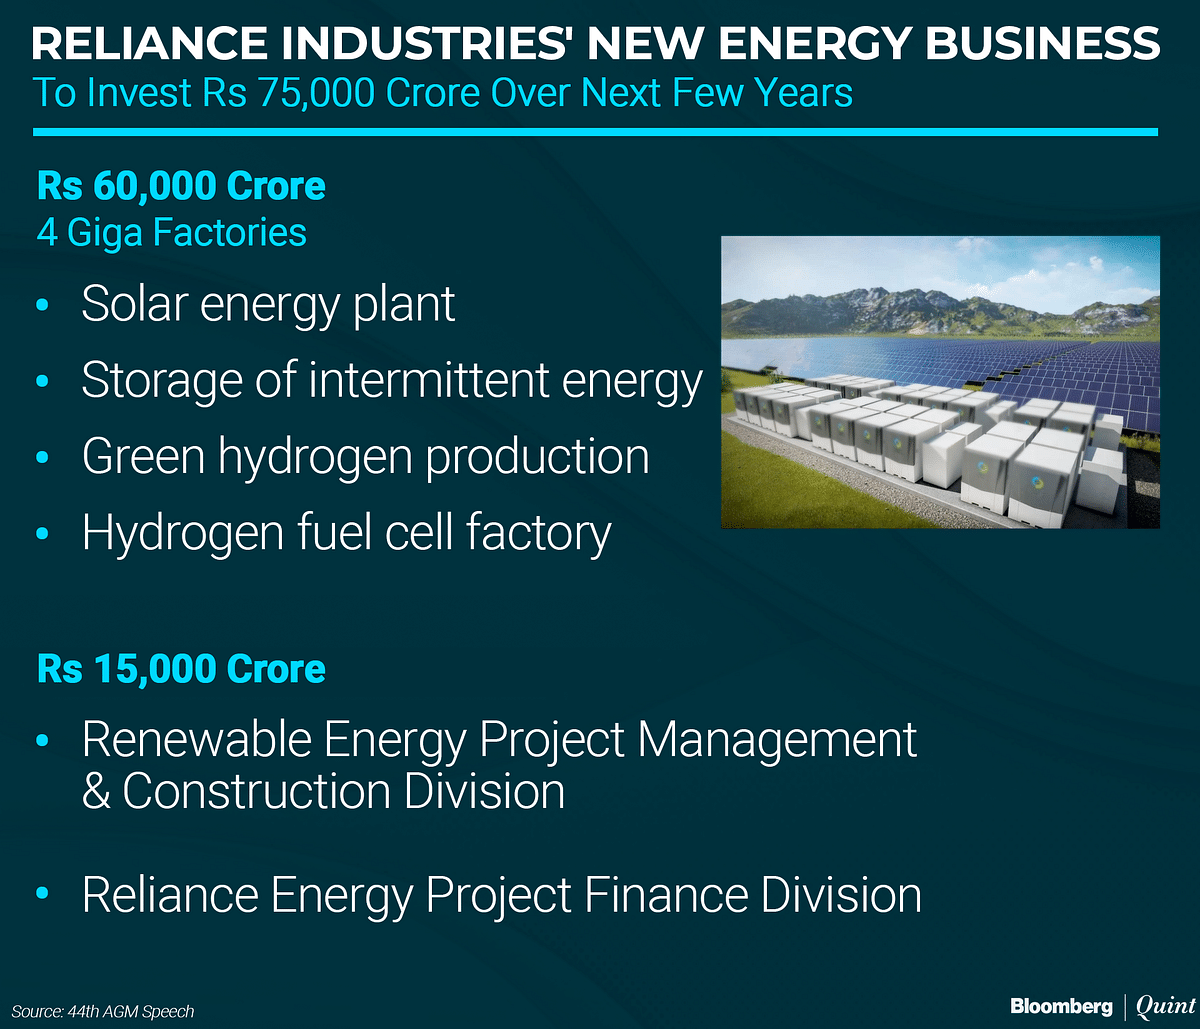 RIL AGM: Reliance Industries Plans To Invest Rs 75,000 Crore In New Energy Business